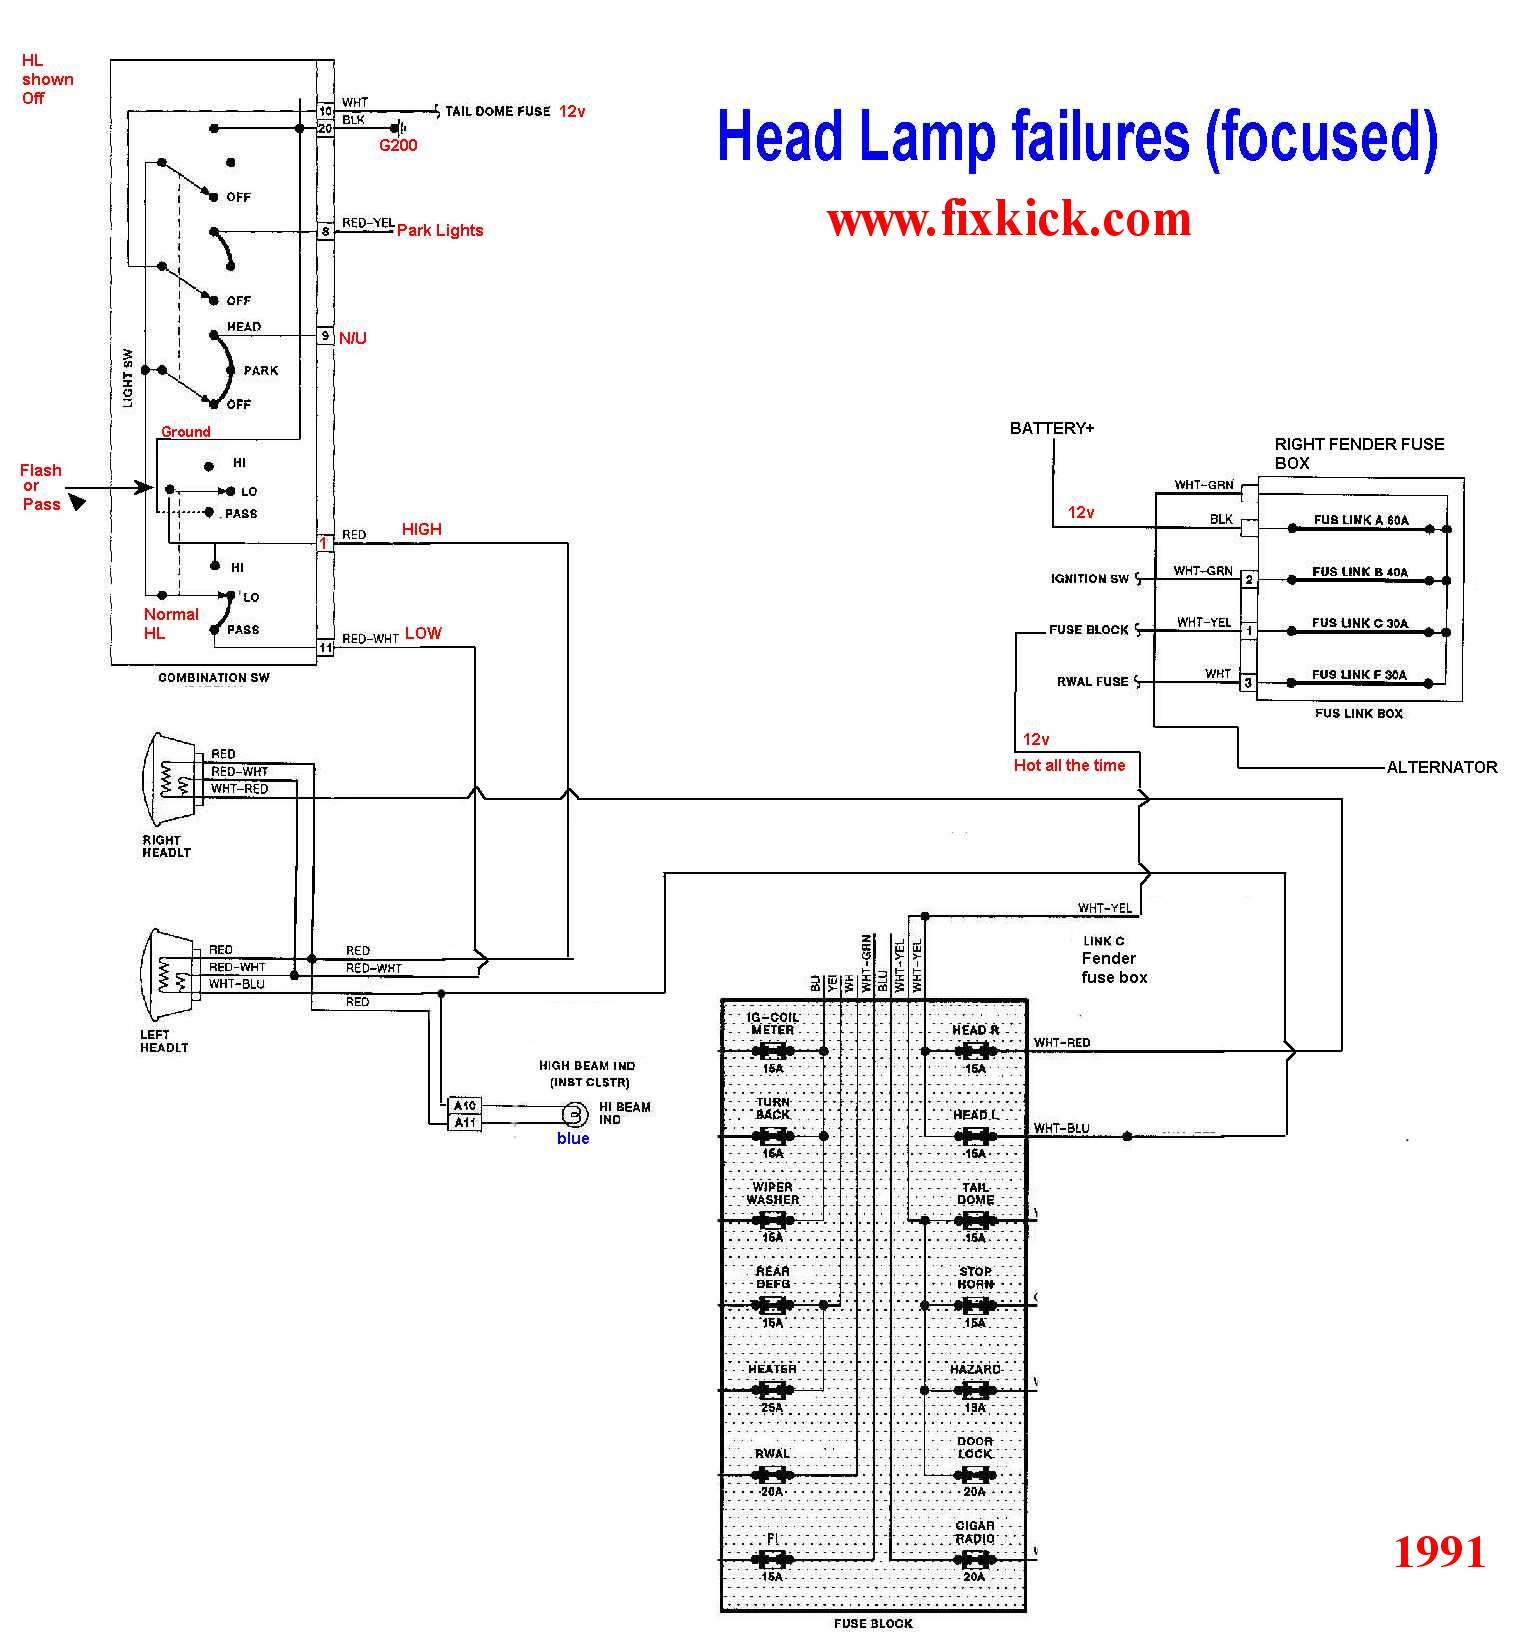 HL1A geo tracker wiring diagram 92 geo tracker wiring diagram \u2022 free 2008 Toyota Tundra Running Lights Wiring-Diagram at edmiracle.co